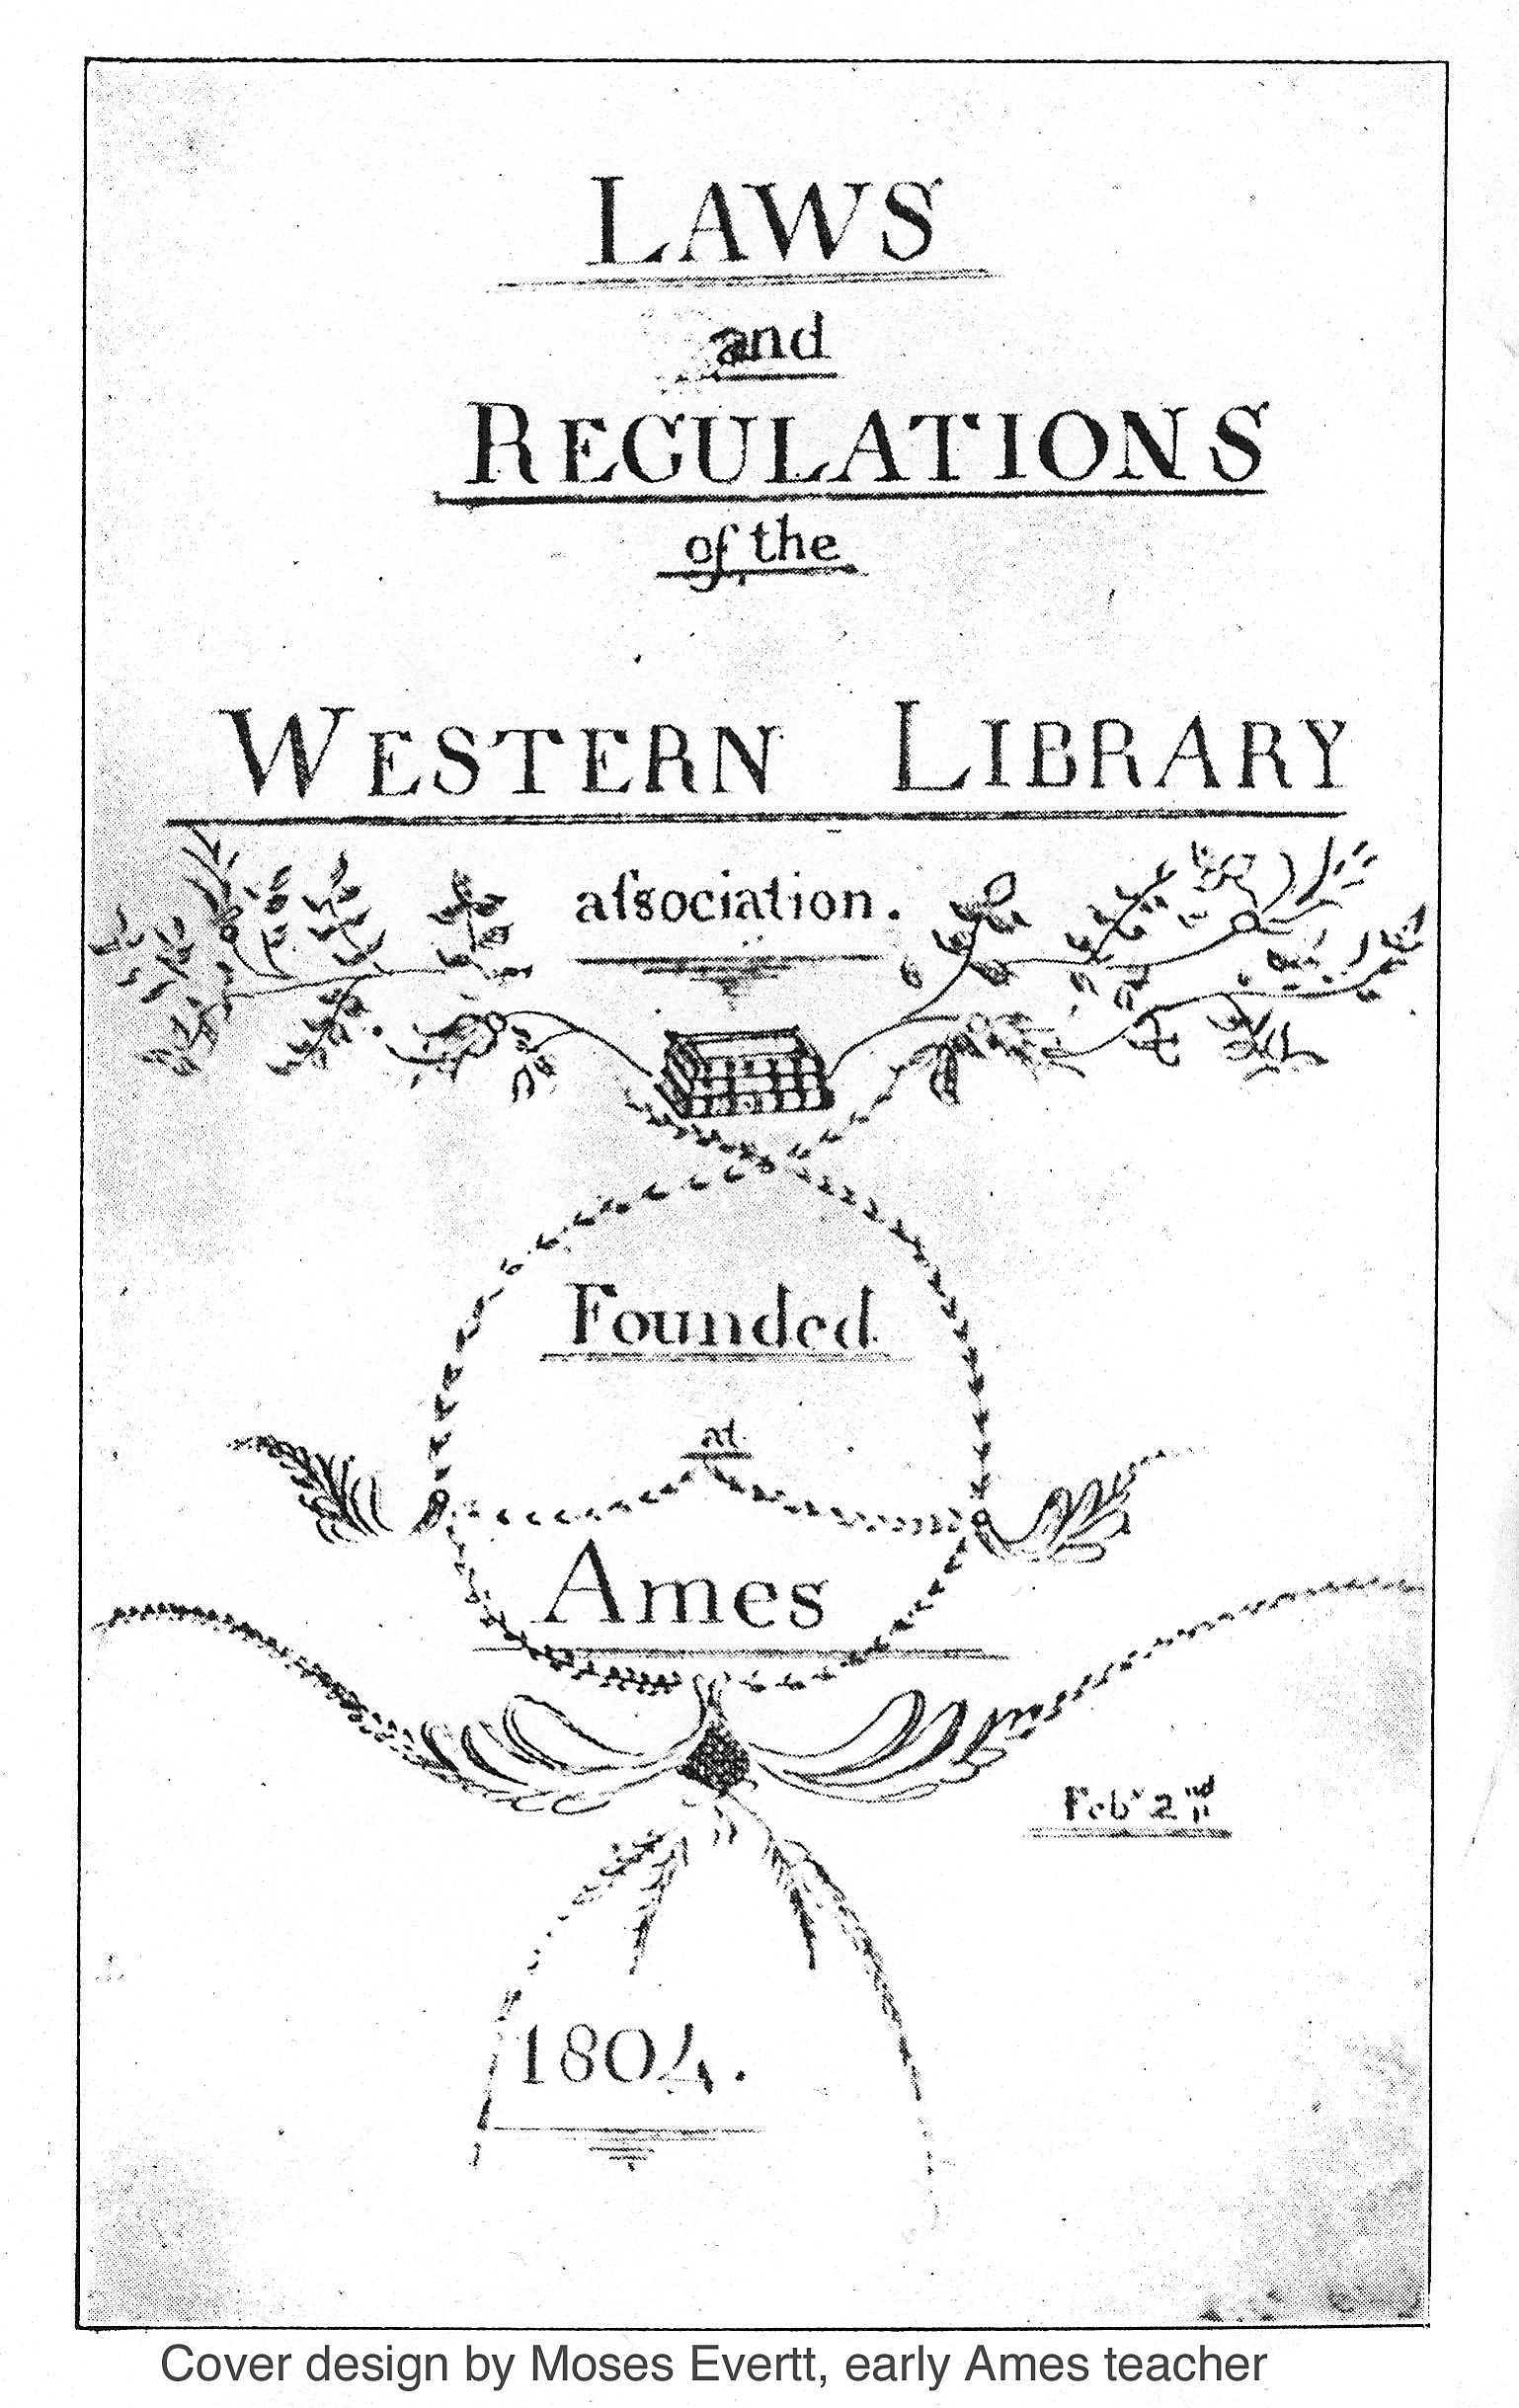 This is the cover of the Western Library Association's record book that Sarah Cutler refers to in her work and is an important primary source in hashing out the dates of the library's founding.  Photo courtesy of the Ohio University website.